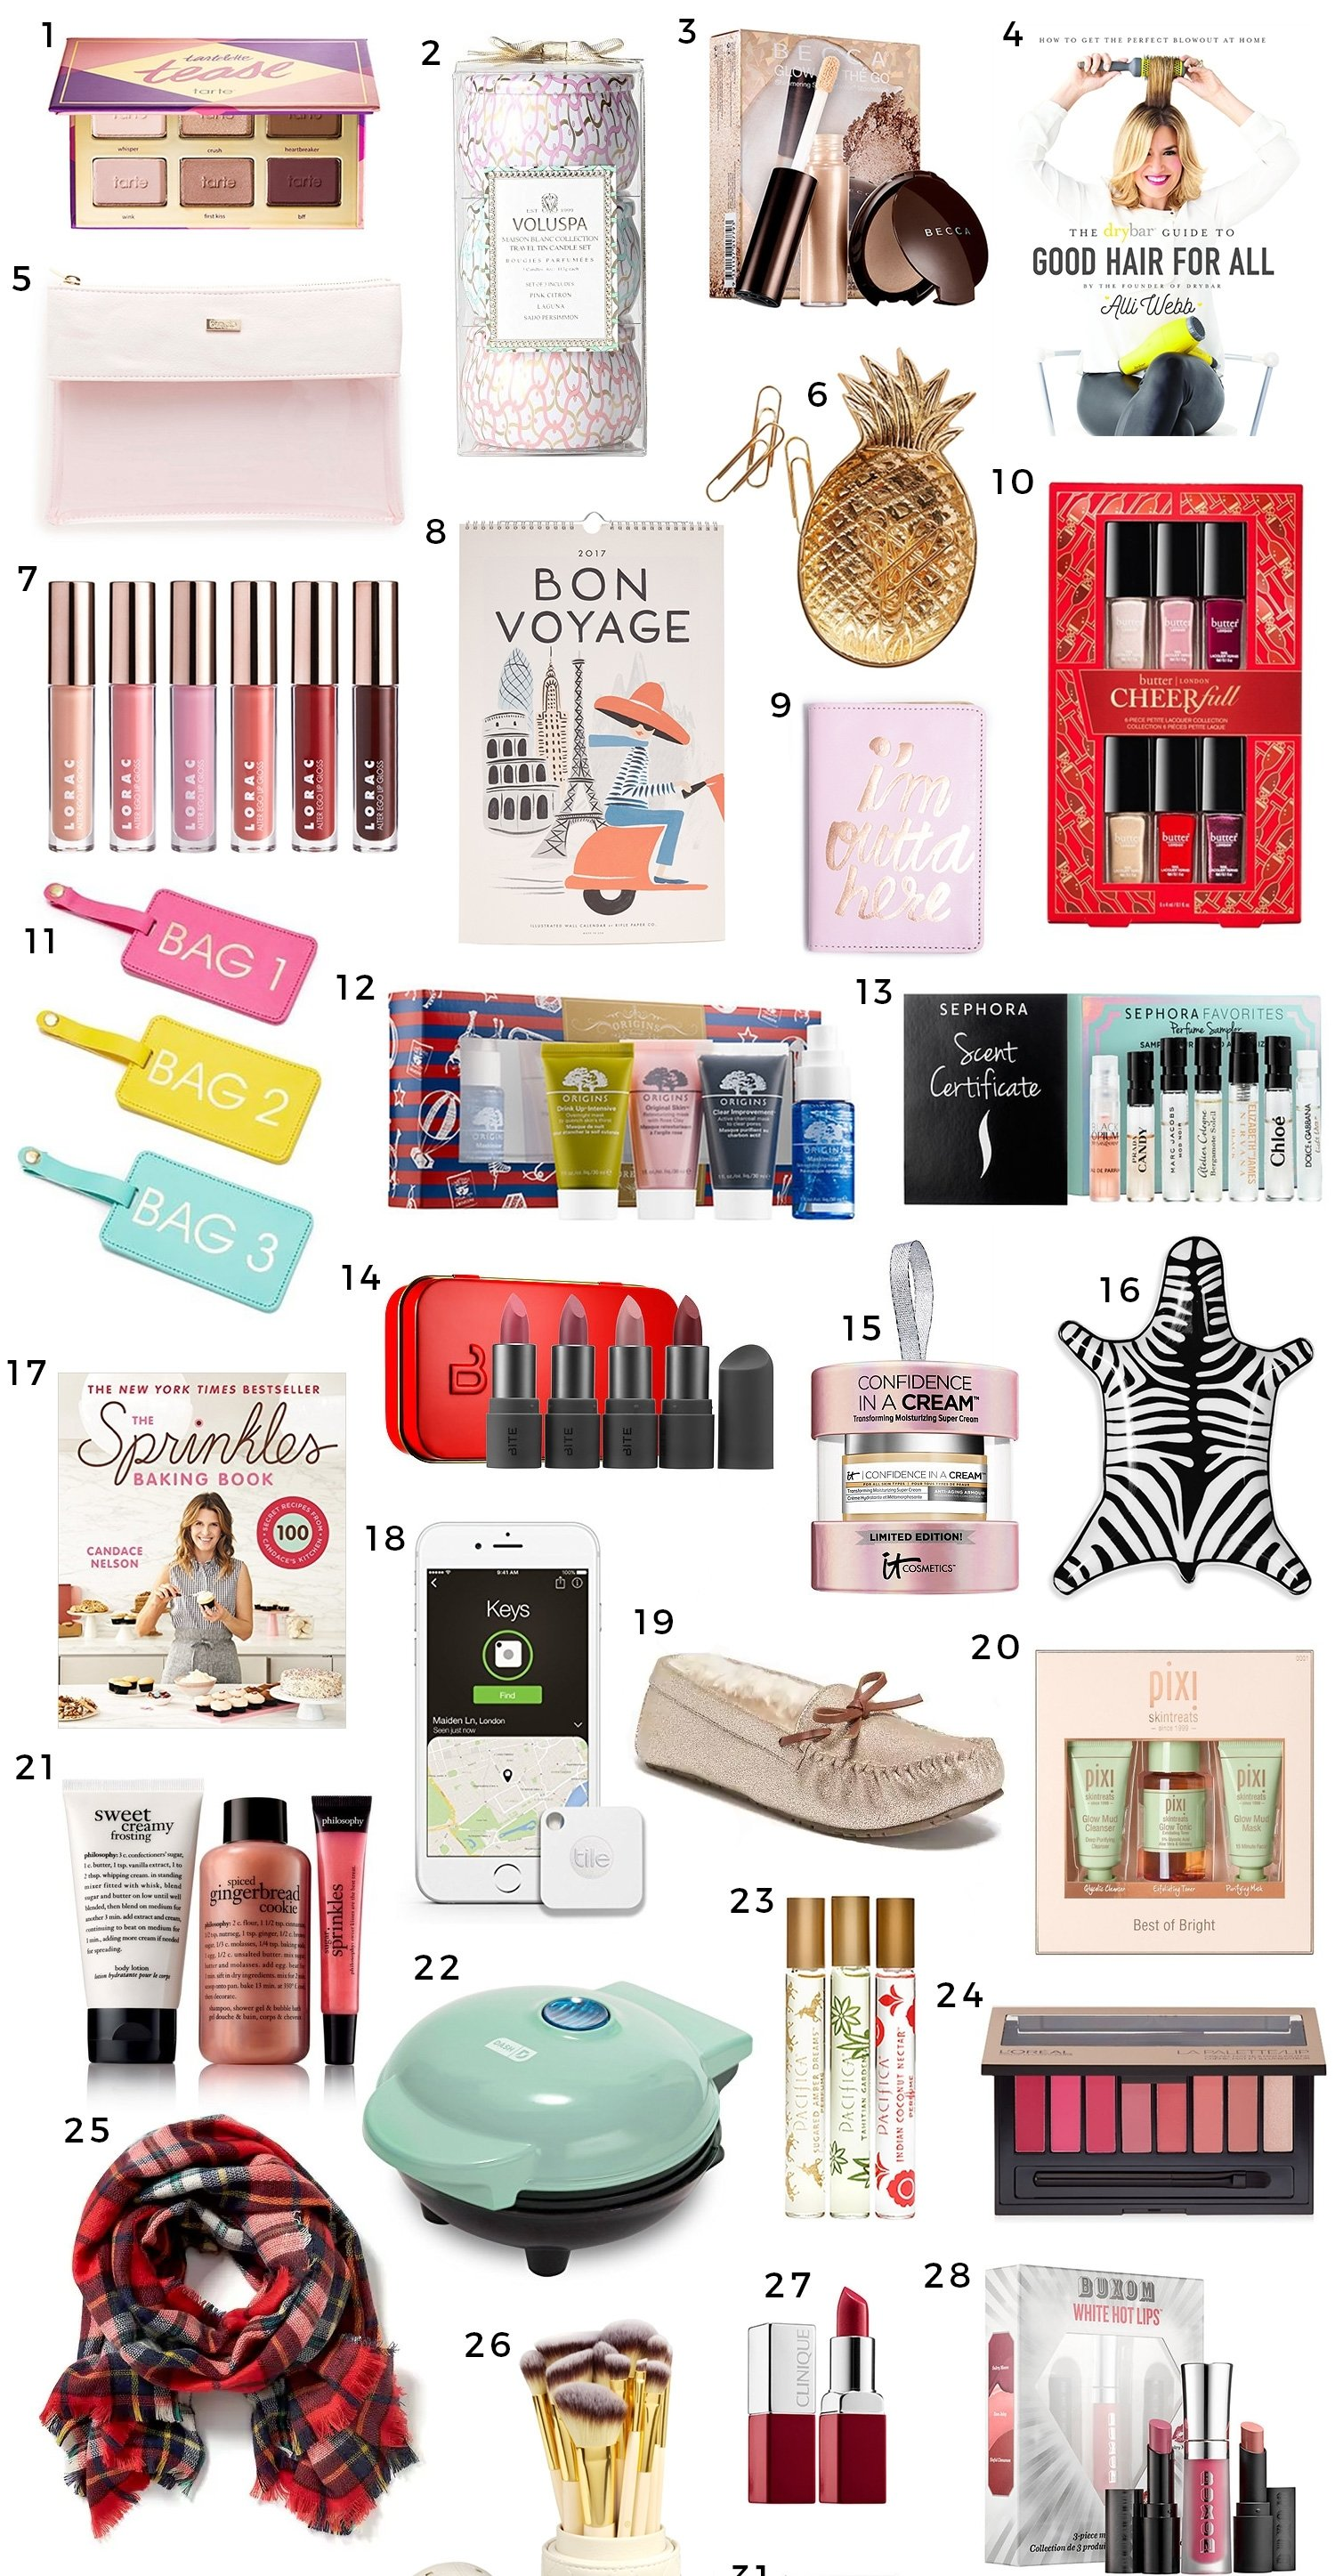 10 Beautiful Gift Ideas For A Woman the best christmas gift ideas for women under 25 ashley brooke 15 2021